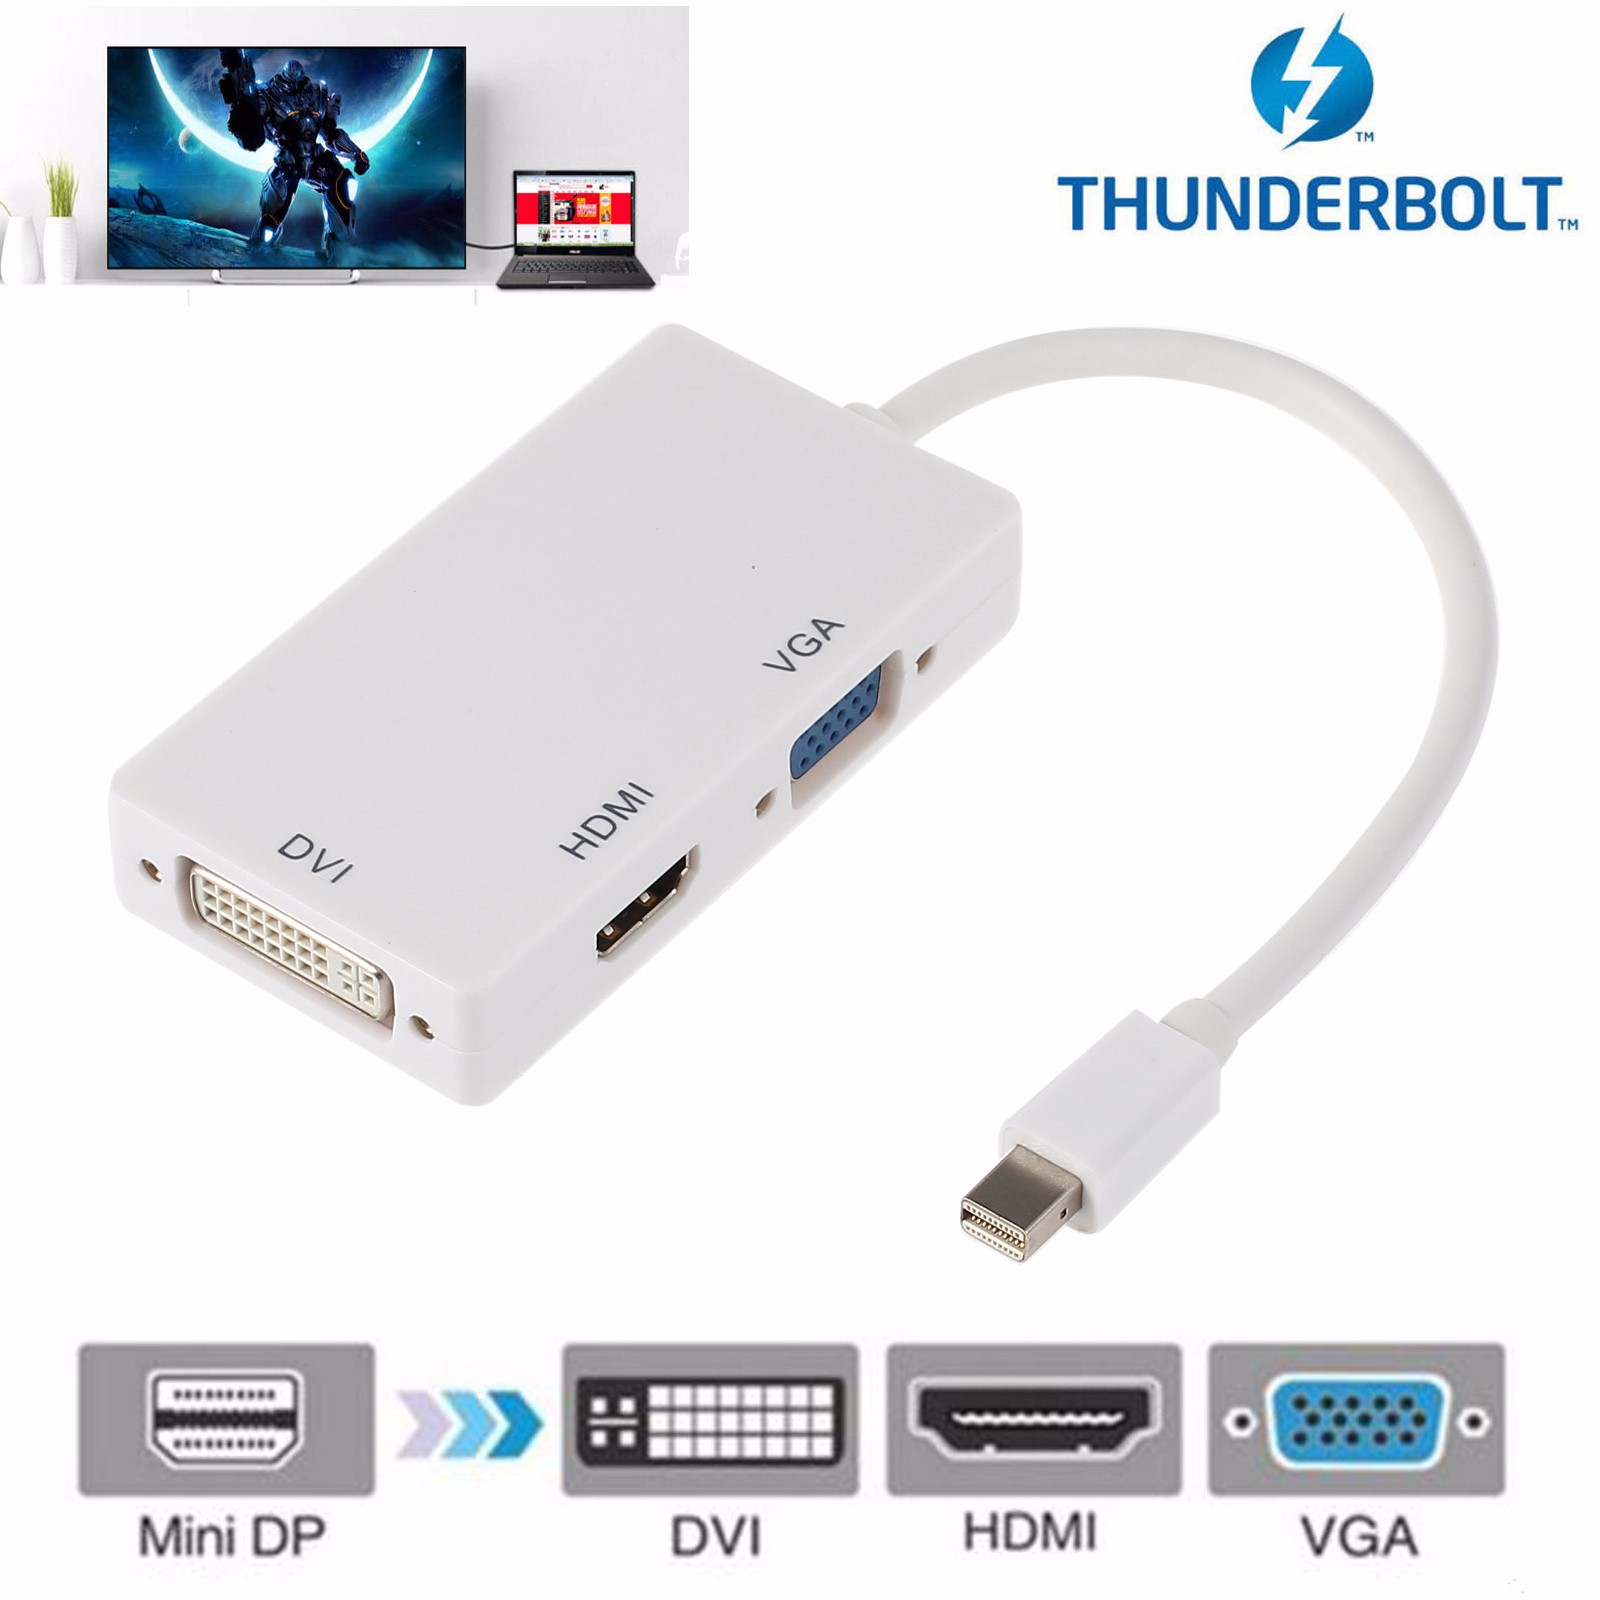 ESYNIC Mini Displayport Thunderbolt to HDMI VGA DVI Adapter Cable 3 in 1 Mini Display Port DP to DVI VGA HDMI Adapter Cable 28cm for IMac Mac Book Pro